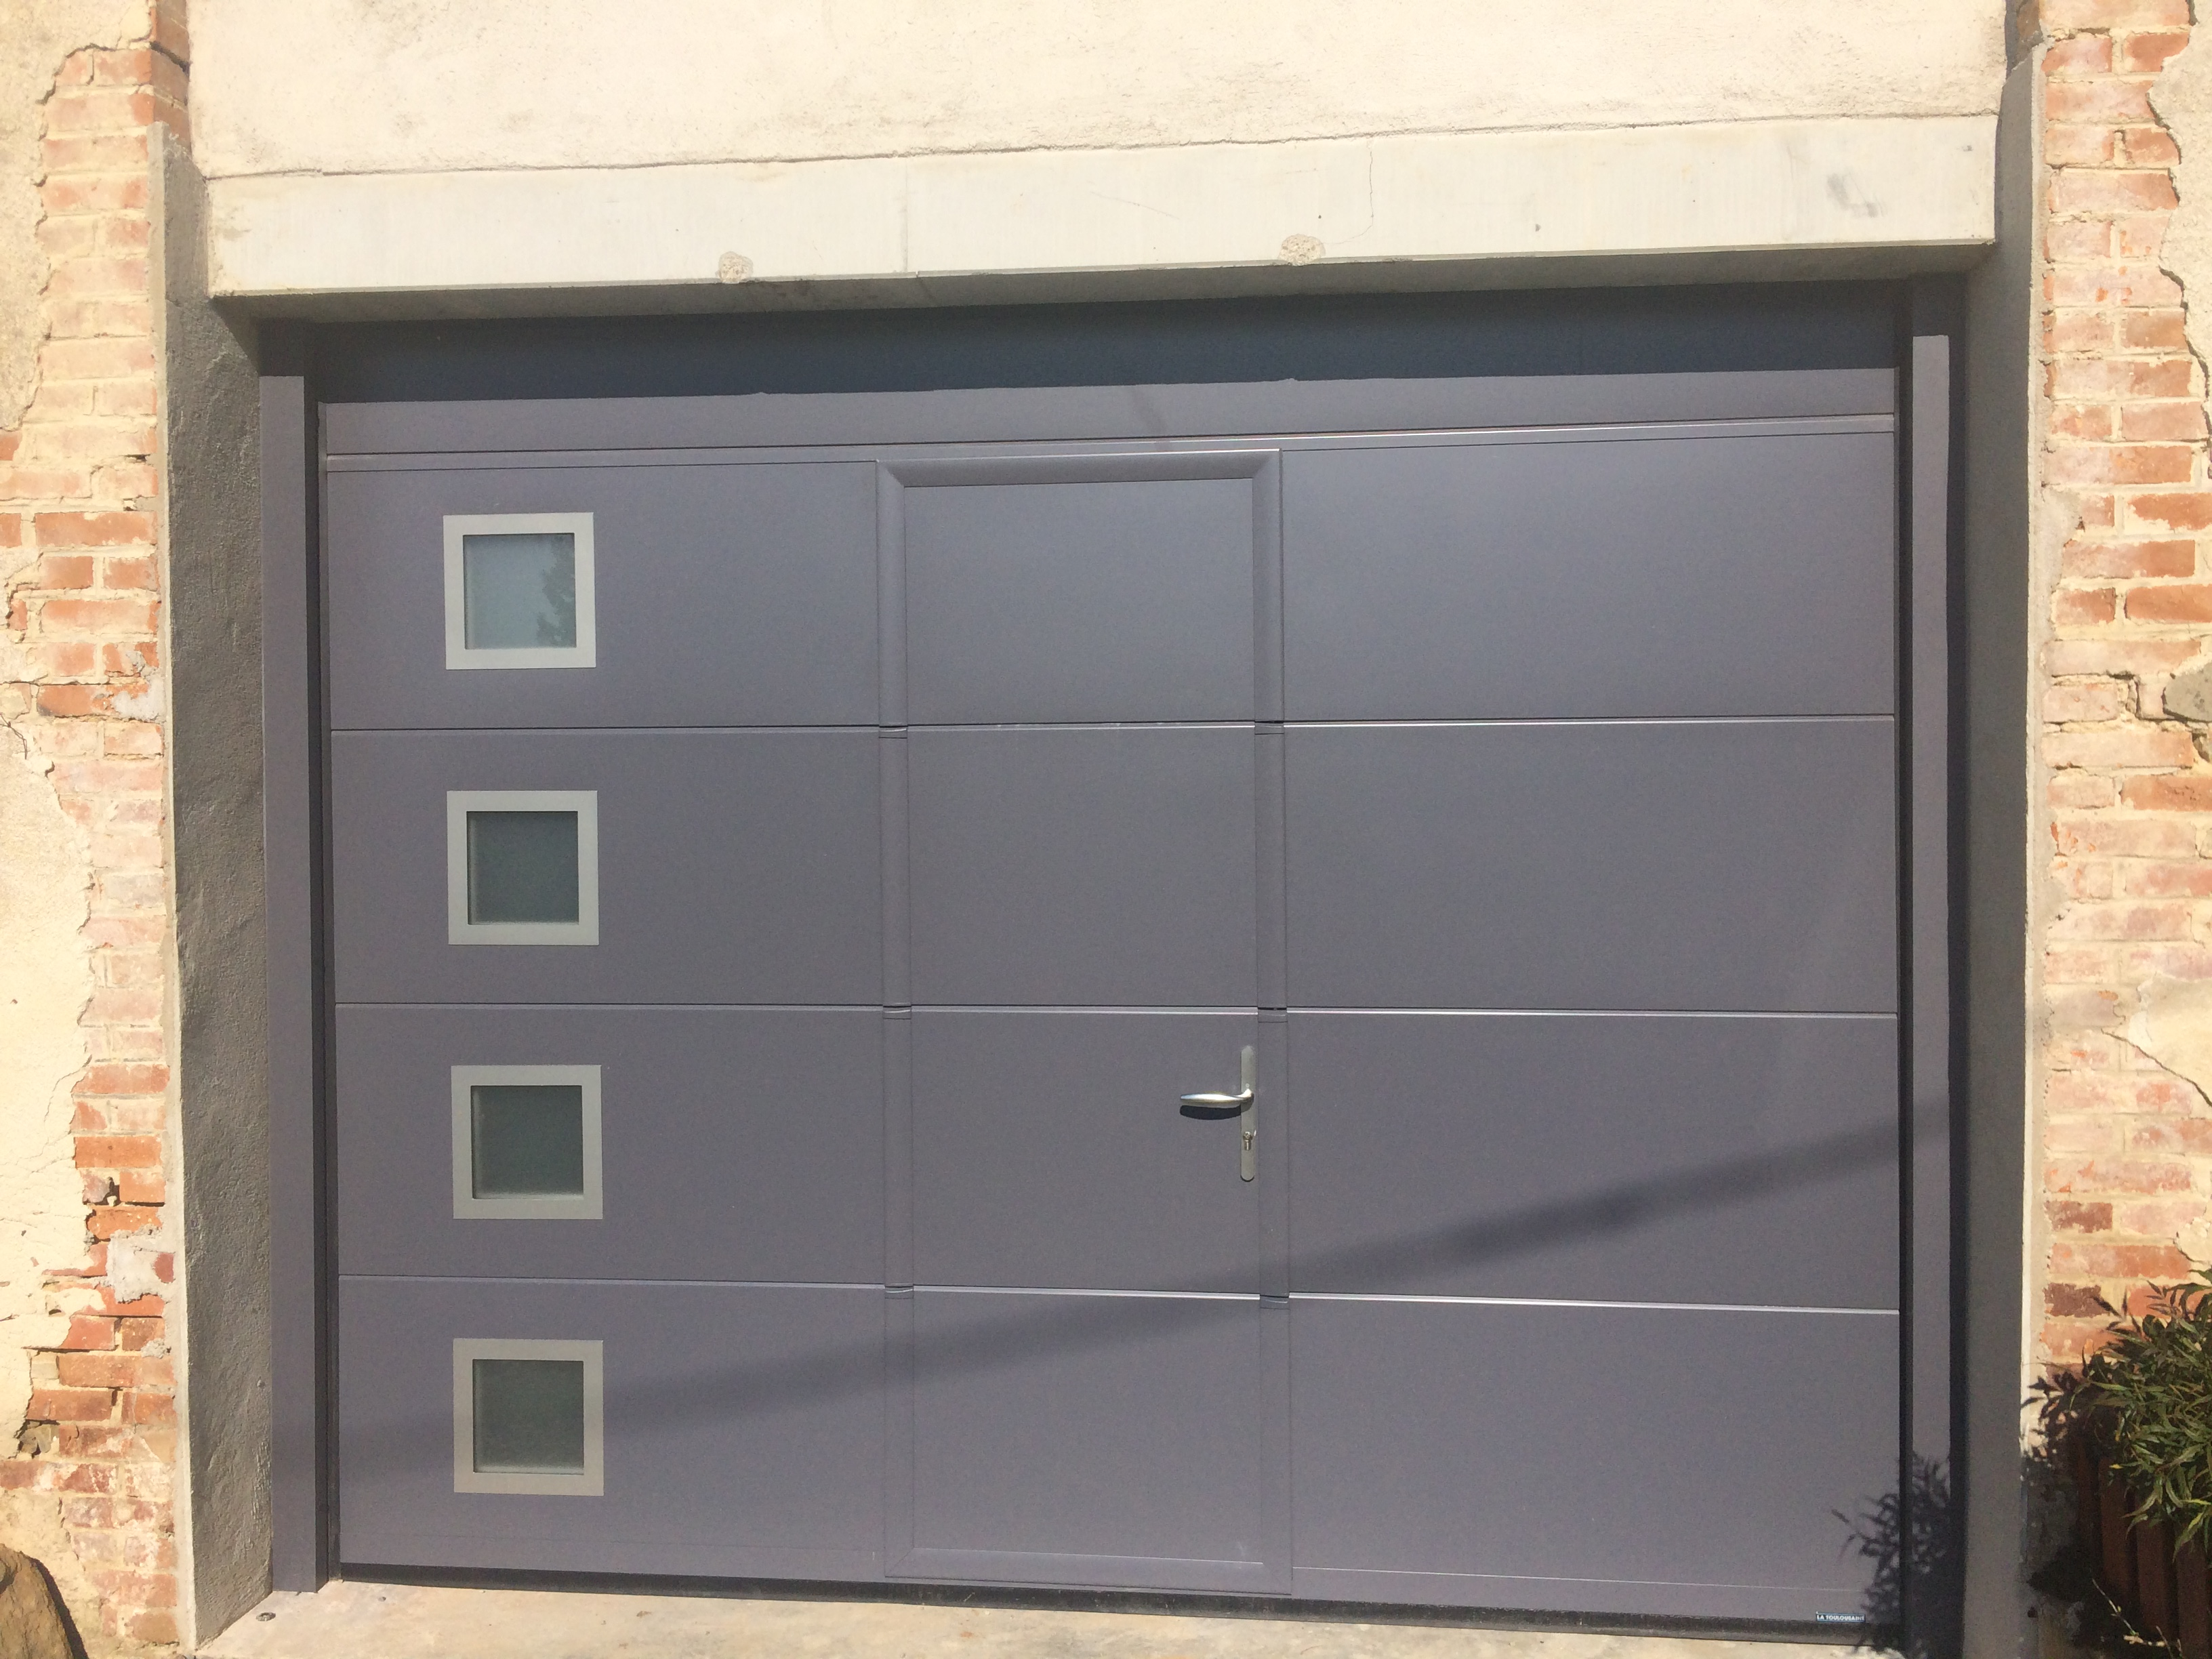 Porte de garage sectionnelle panneau lisse alu glass for Porte de garage sectionnelle a portillon